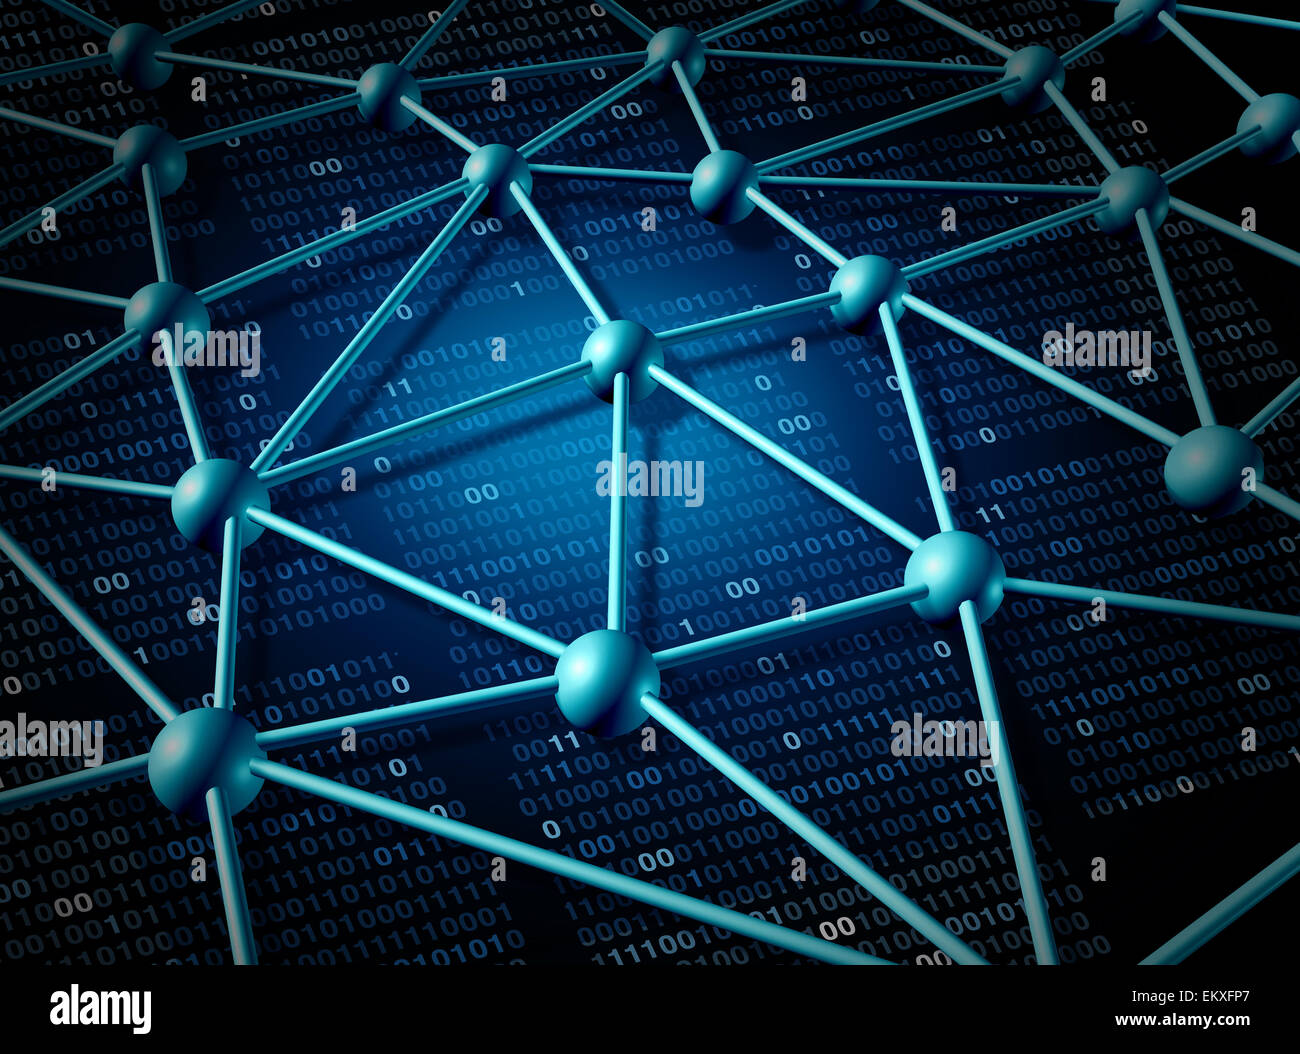 Telecommunication global network structure and networking concept with connection grid on the internet as an abstract - Stock Image